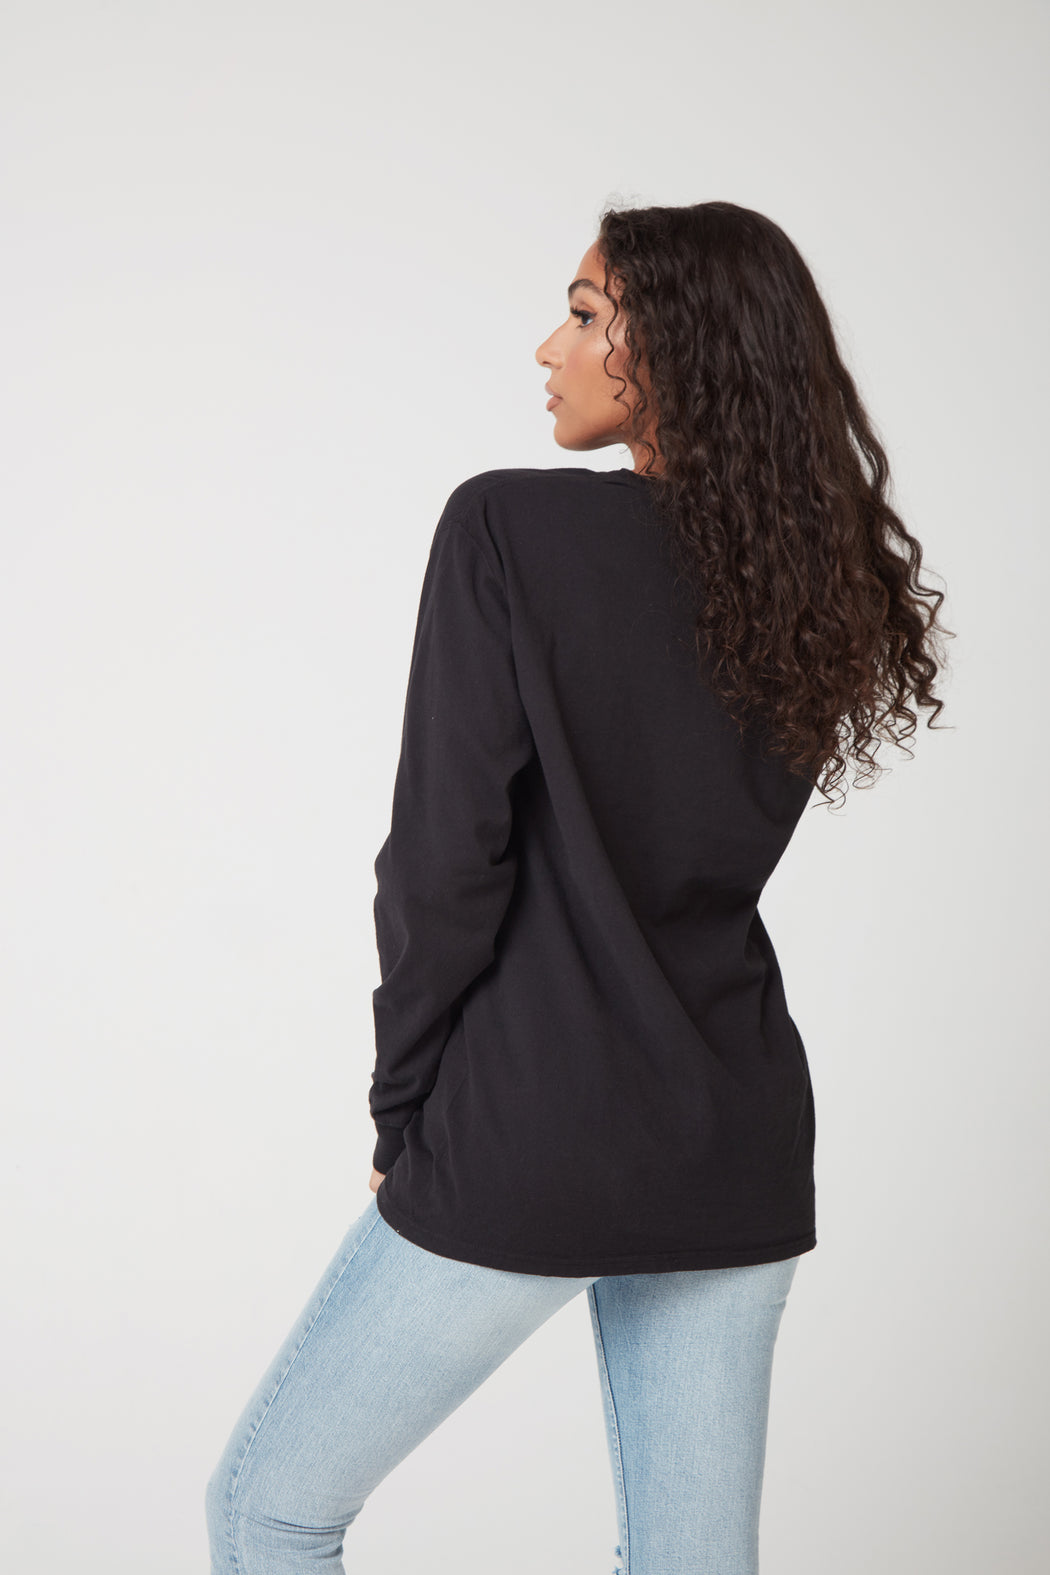 Varsi-Tee Long Sleeve